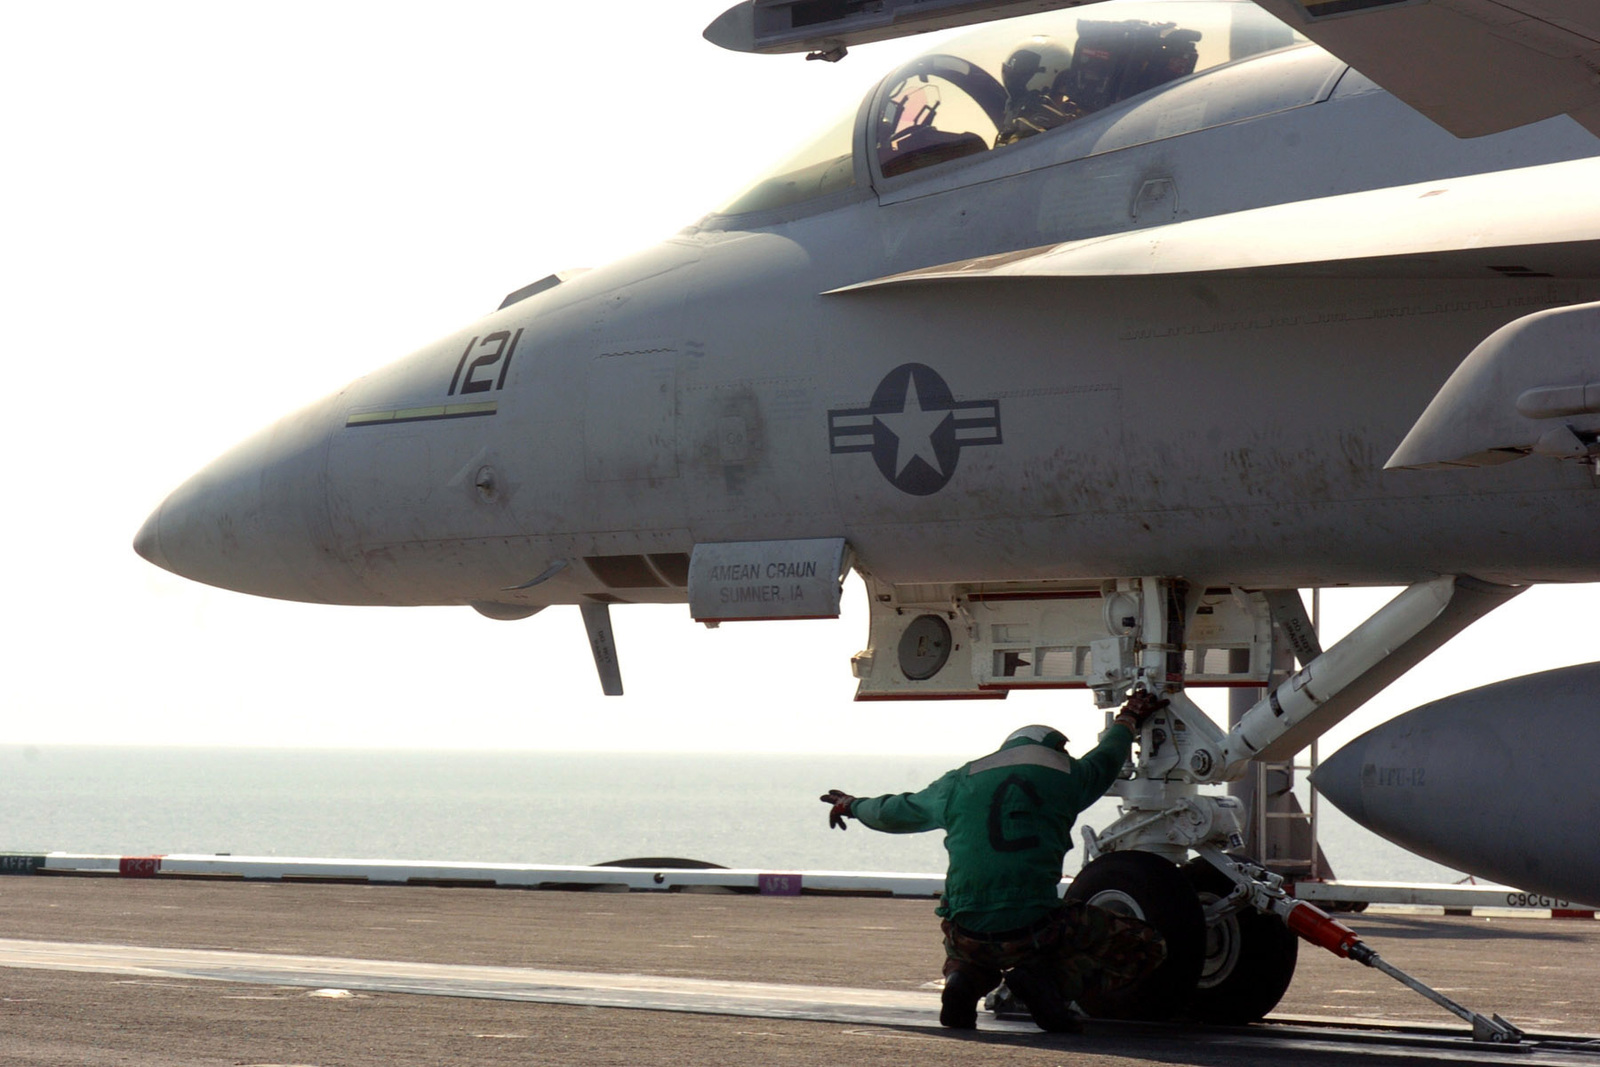 A US Navy flight deck crew member signals to advance the shuttle during the launch of an F/A-18E Super Hornet aircraft from Strike Fighter Squadron 105 after its landing on the flight deck of the Nimitz Class Aircraft Carrier USS THEODORE ROOSEVELT (CVN 71) during operations in the Atlantic Ocean. The Super Hornet is an all-weather, carrier-based fighter/ attack aircraft that provides USN Carrier Strike Group with increased range, endurance and ordnance-carrying capabilities.(U.S. Navy official photo by Mass Communication SPECIALIST SEAMAN Sheldon Rowley) (Released)